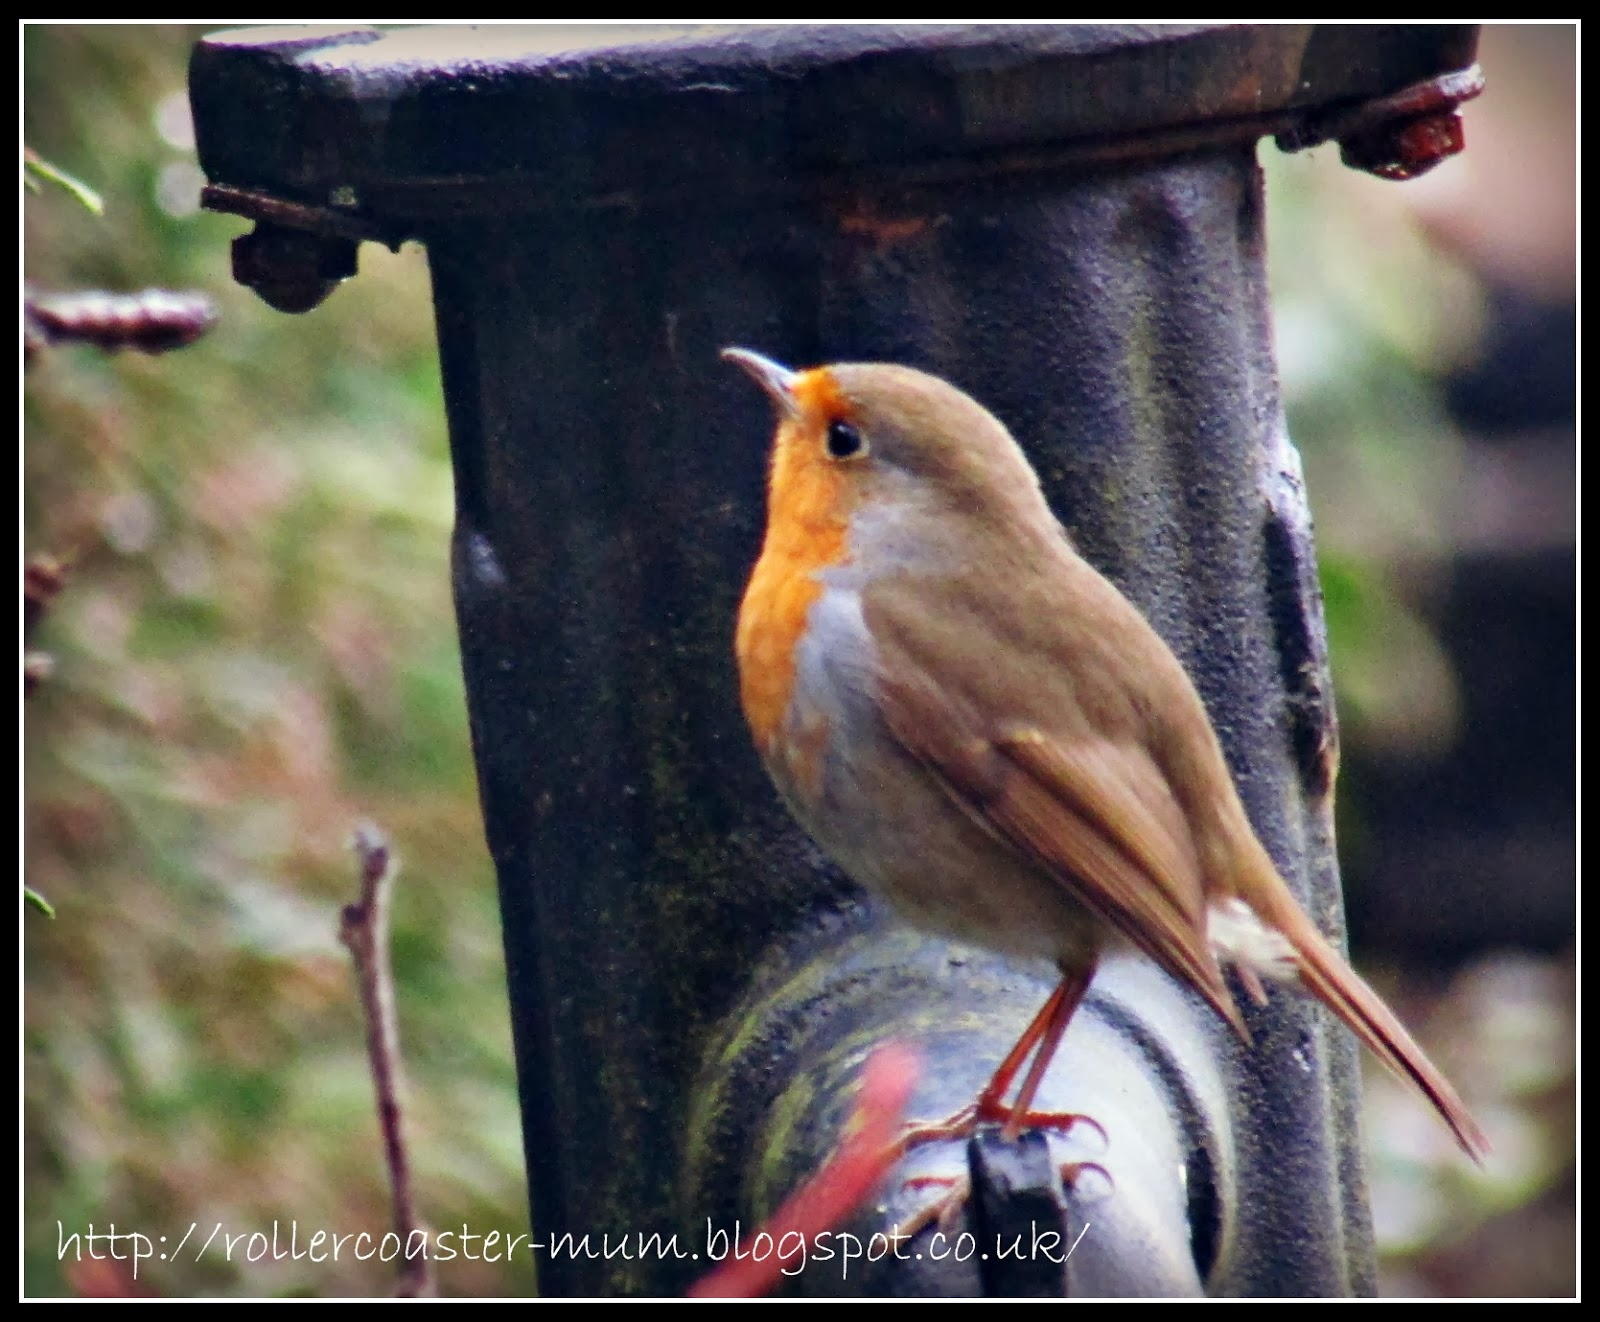 Friendly Robin redbreast